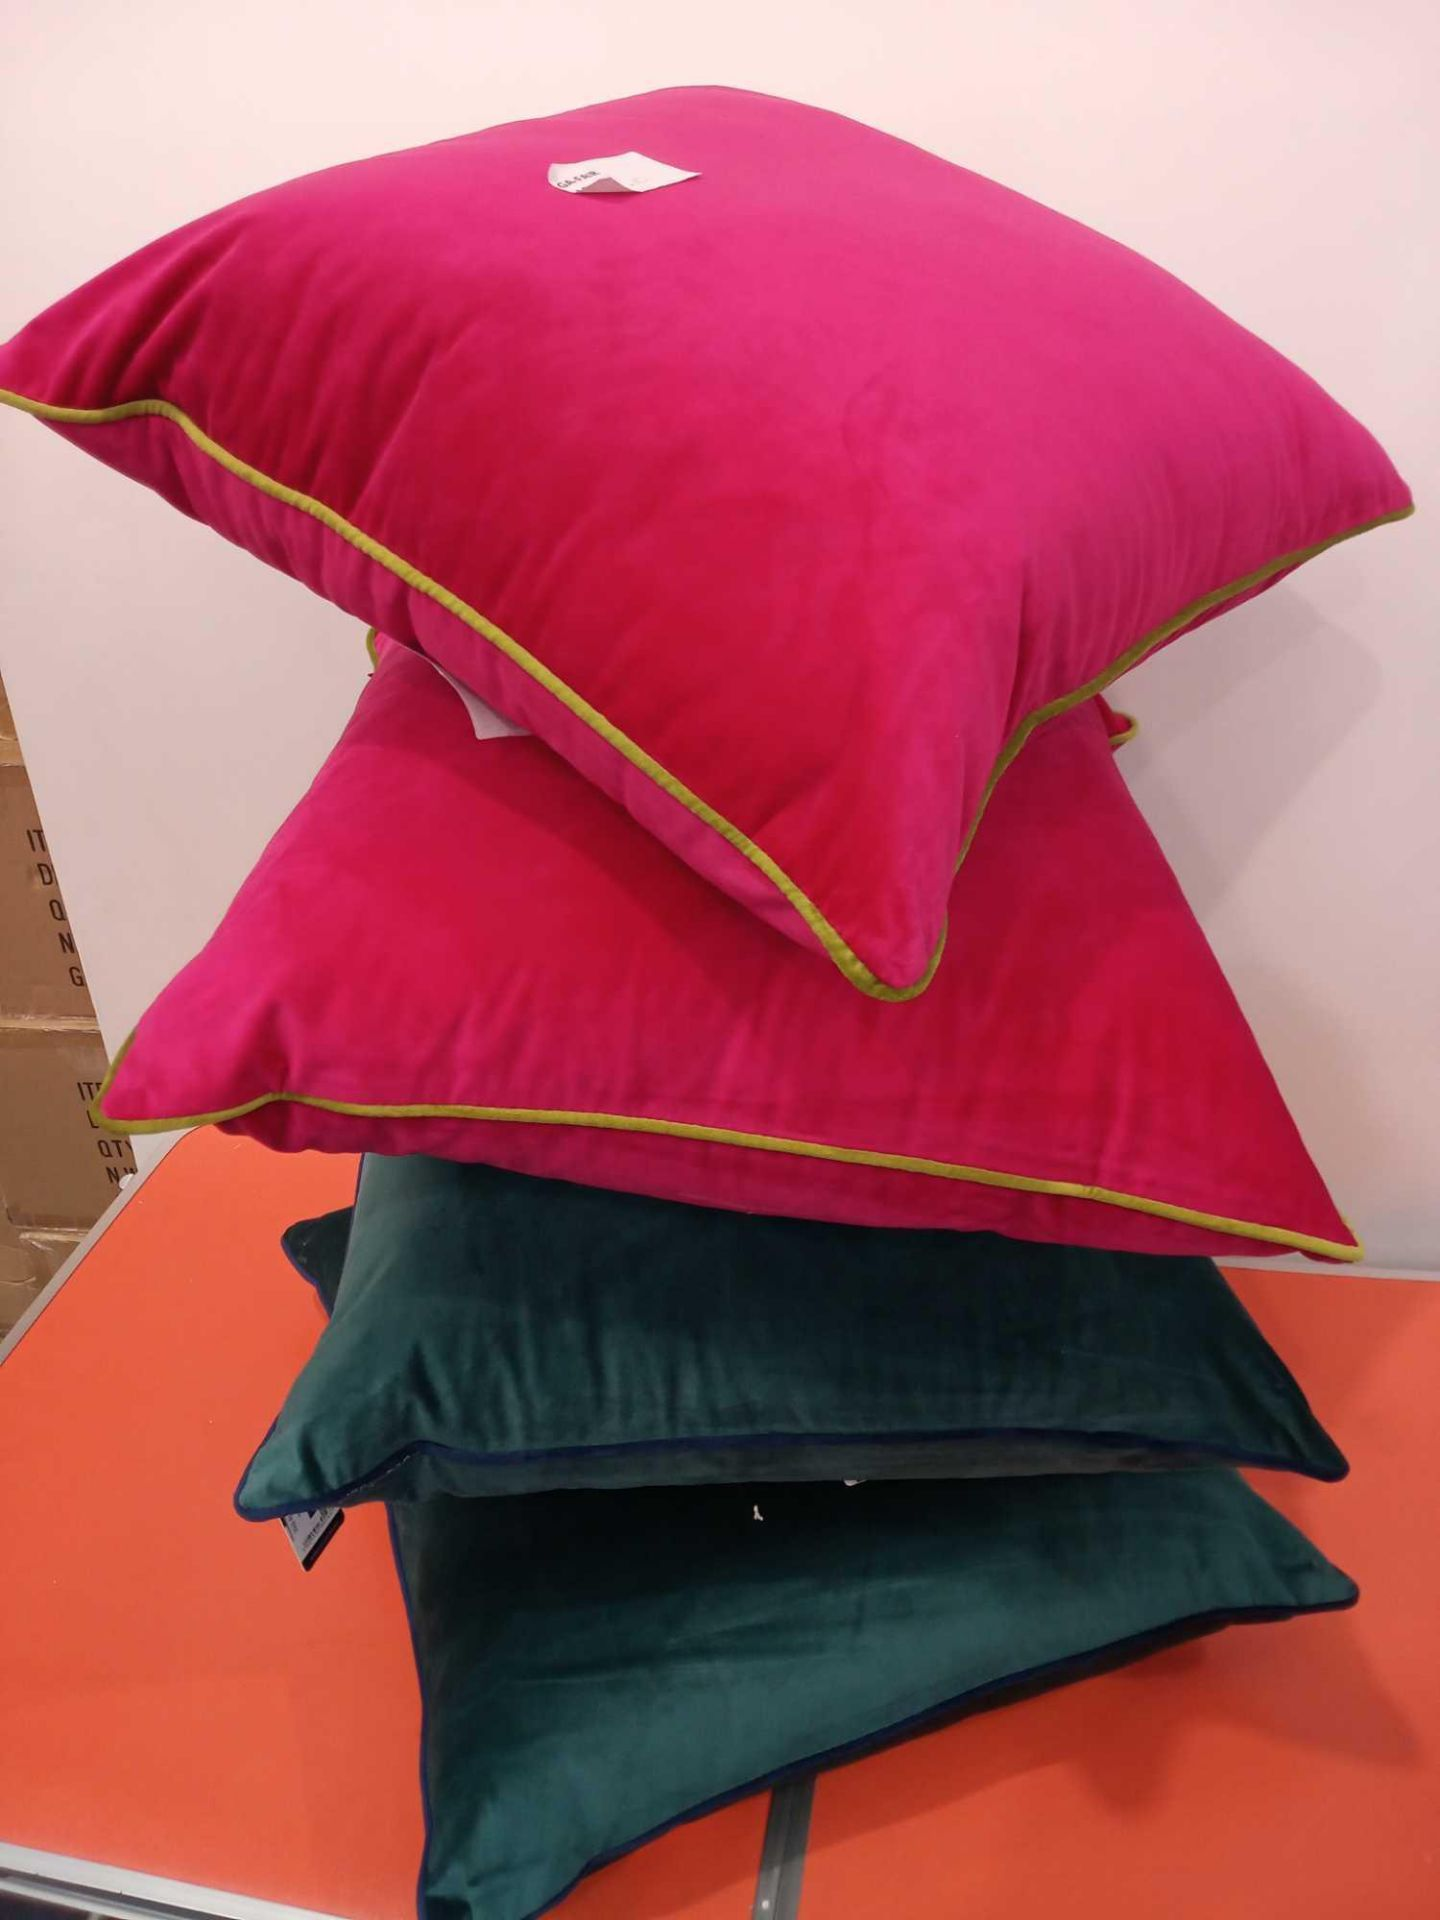 Lot 392 - Rrp £30 Each Assorted Paoletti Velvet Cushions 2 In Dark Green With Blue Piping And 2 In Pink With G